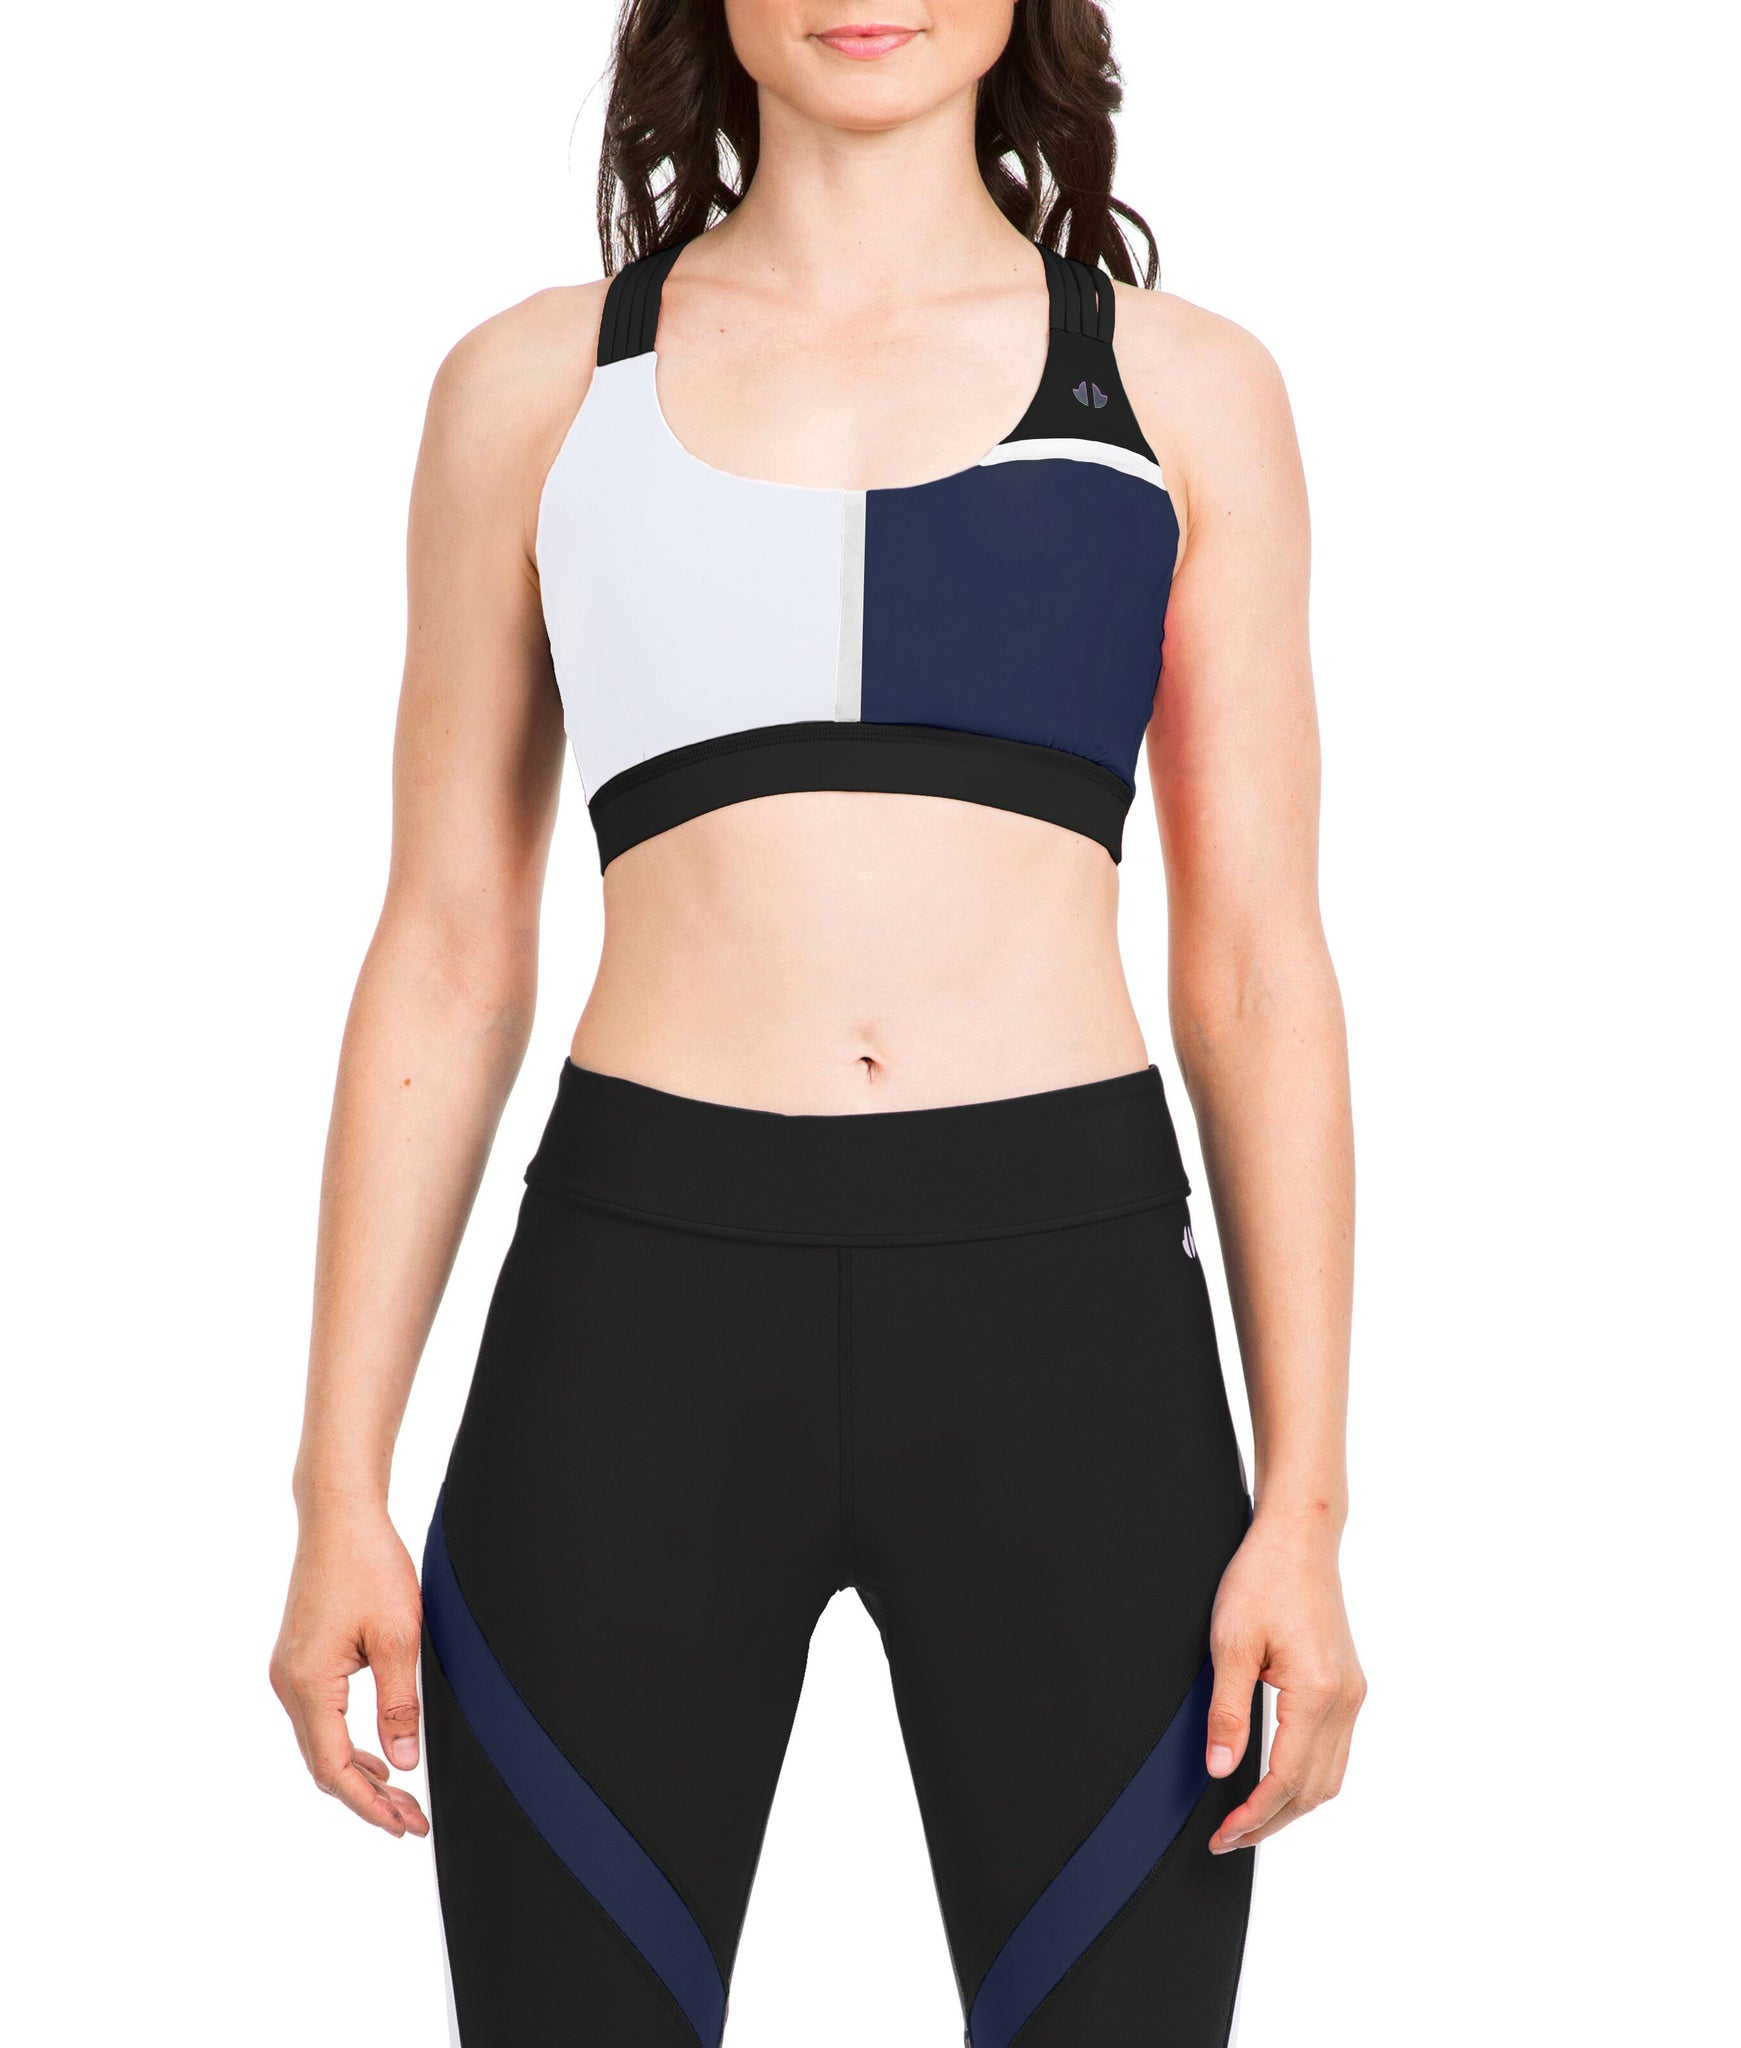 Thrive Societe Black Blue Scoop Bra